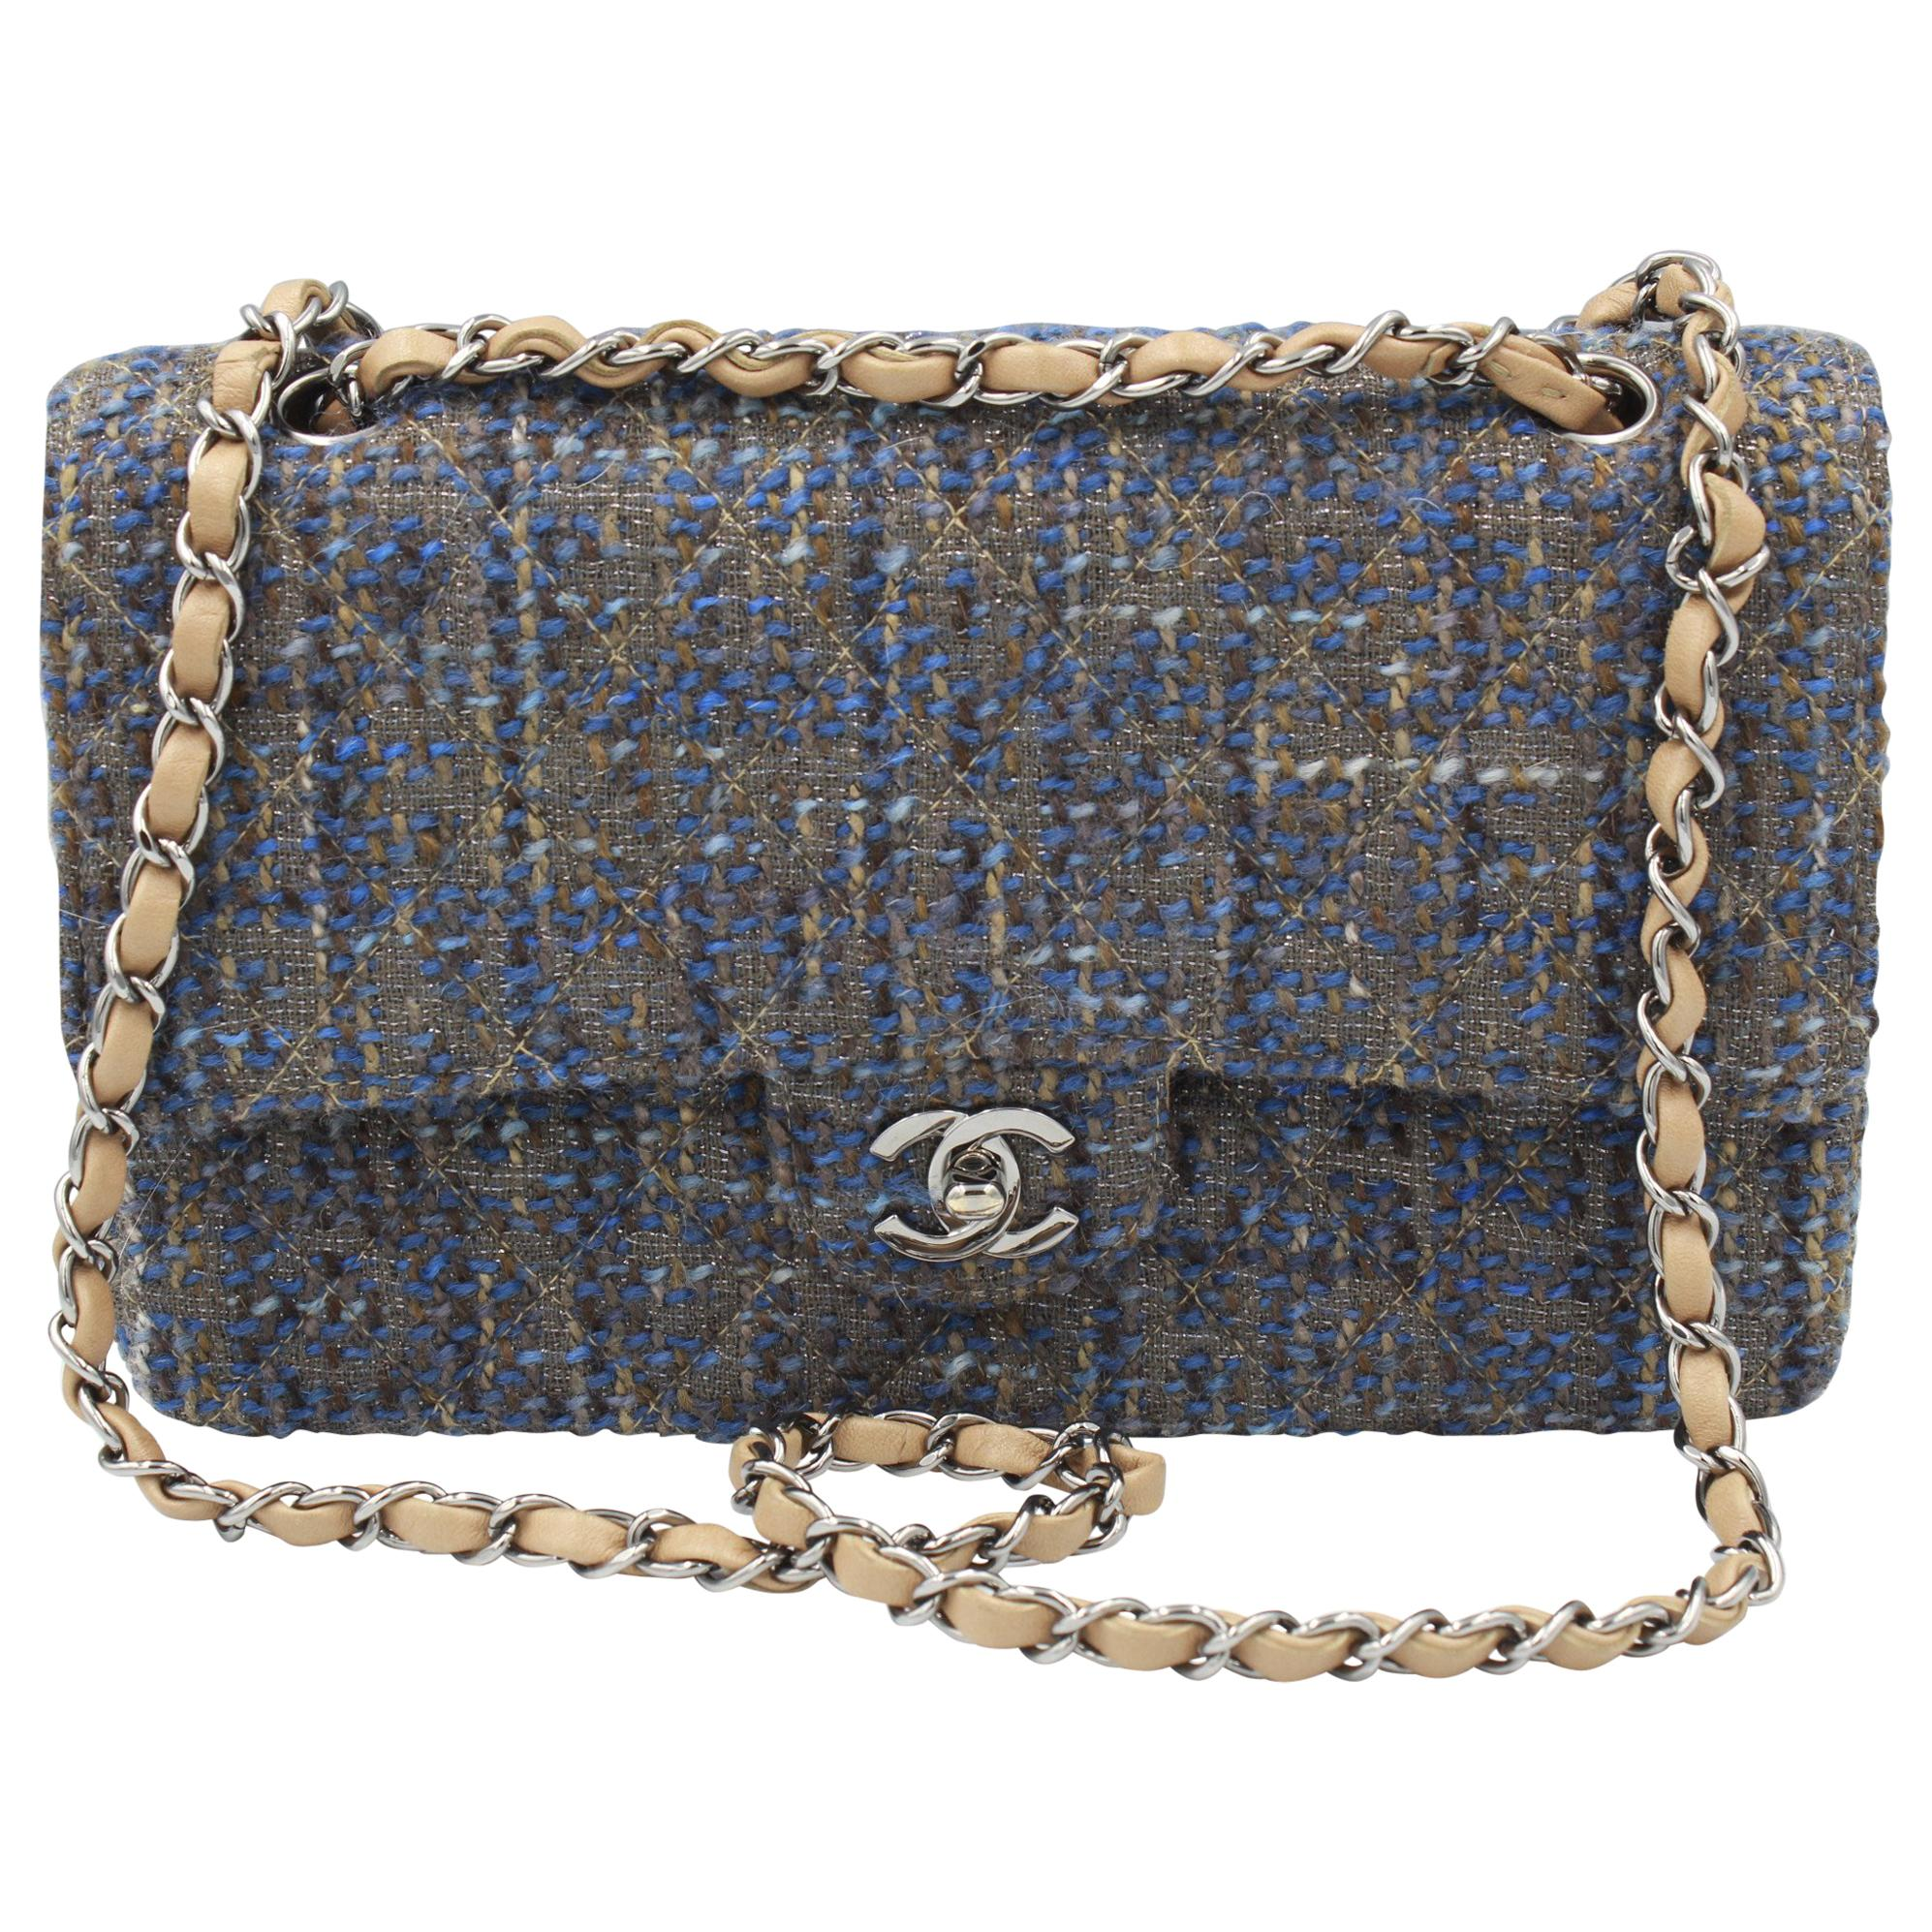 931ae22a2e3b Chanel Pewter 2.55 Reissue 227 Double Flap Bag - 2006 For Sale at 1stdibs